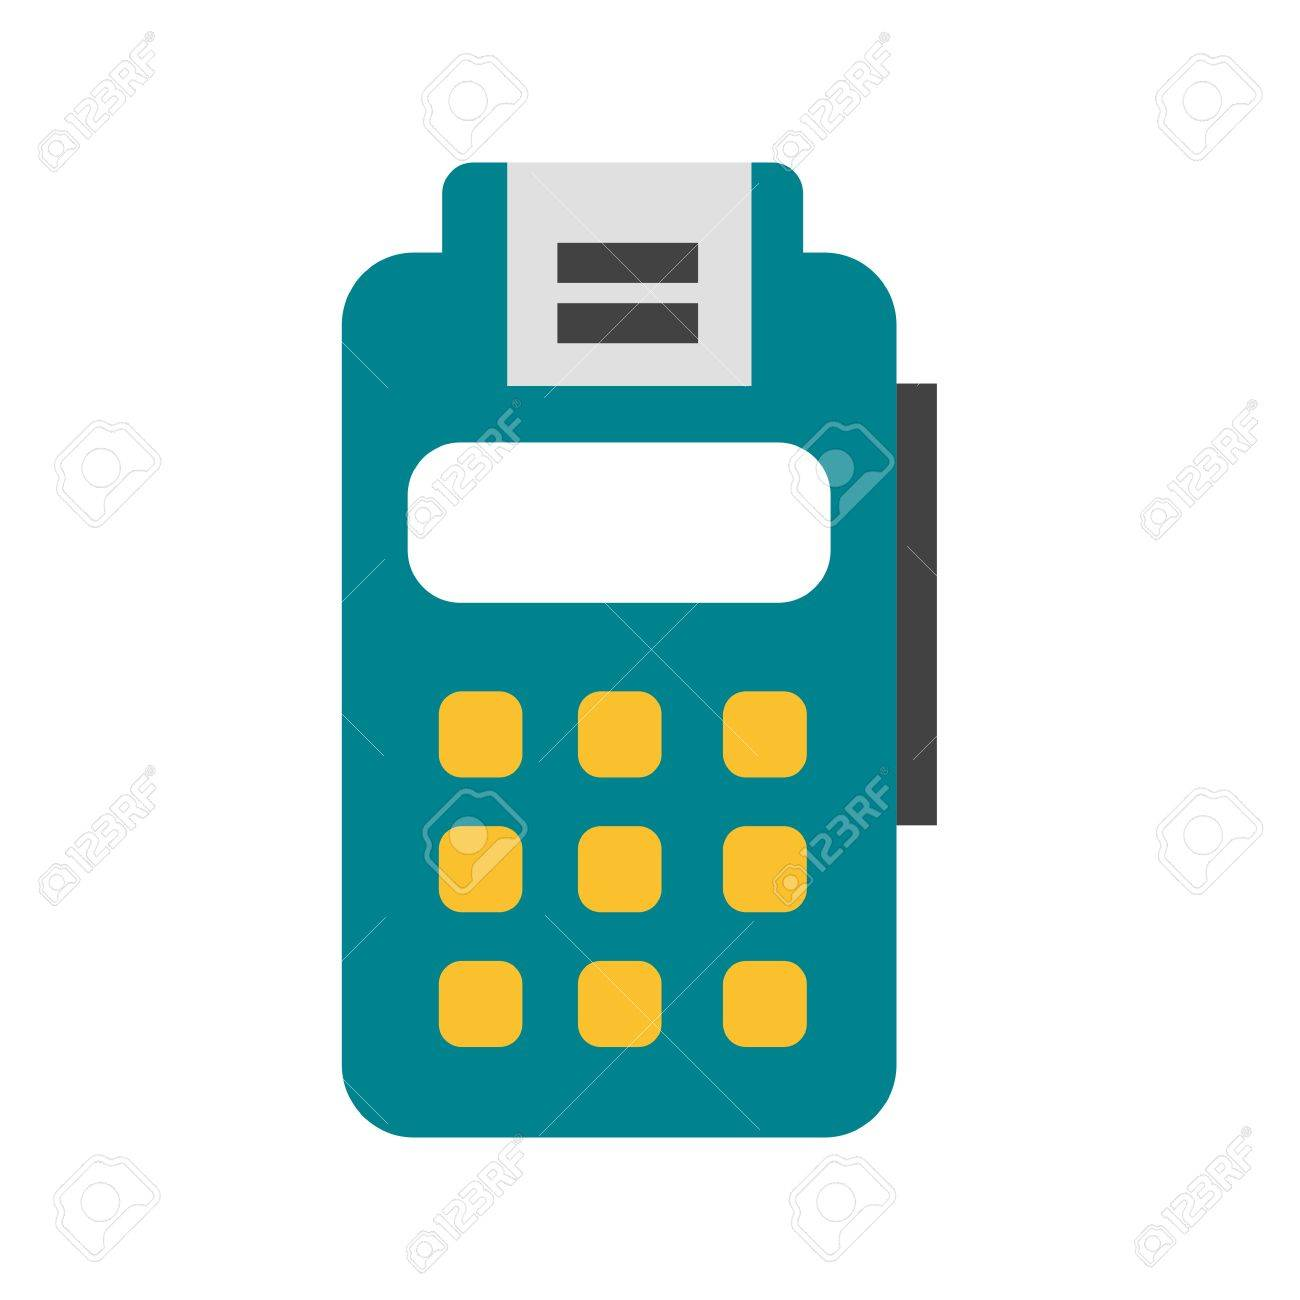 Credit card machine small business image collections free credit card machine business images free business cards card machine credit icon vector image can also magicingreecefo Image collections